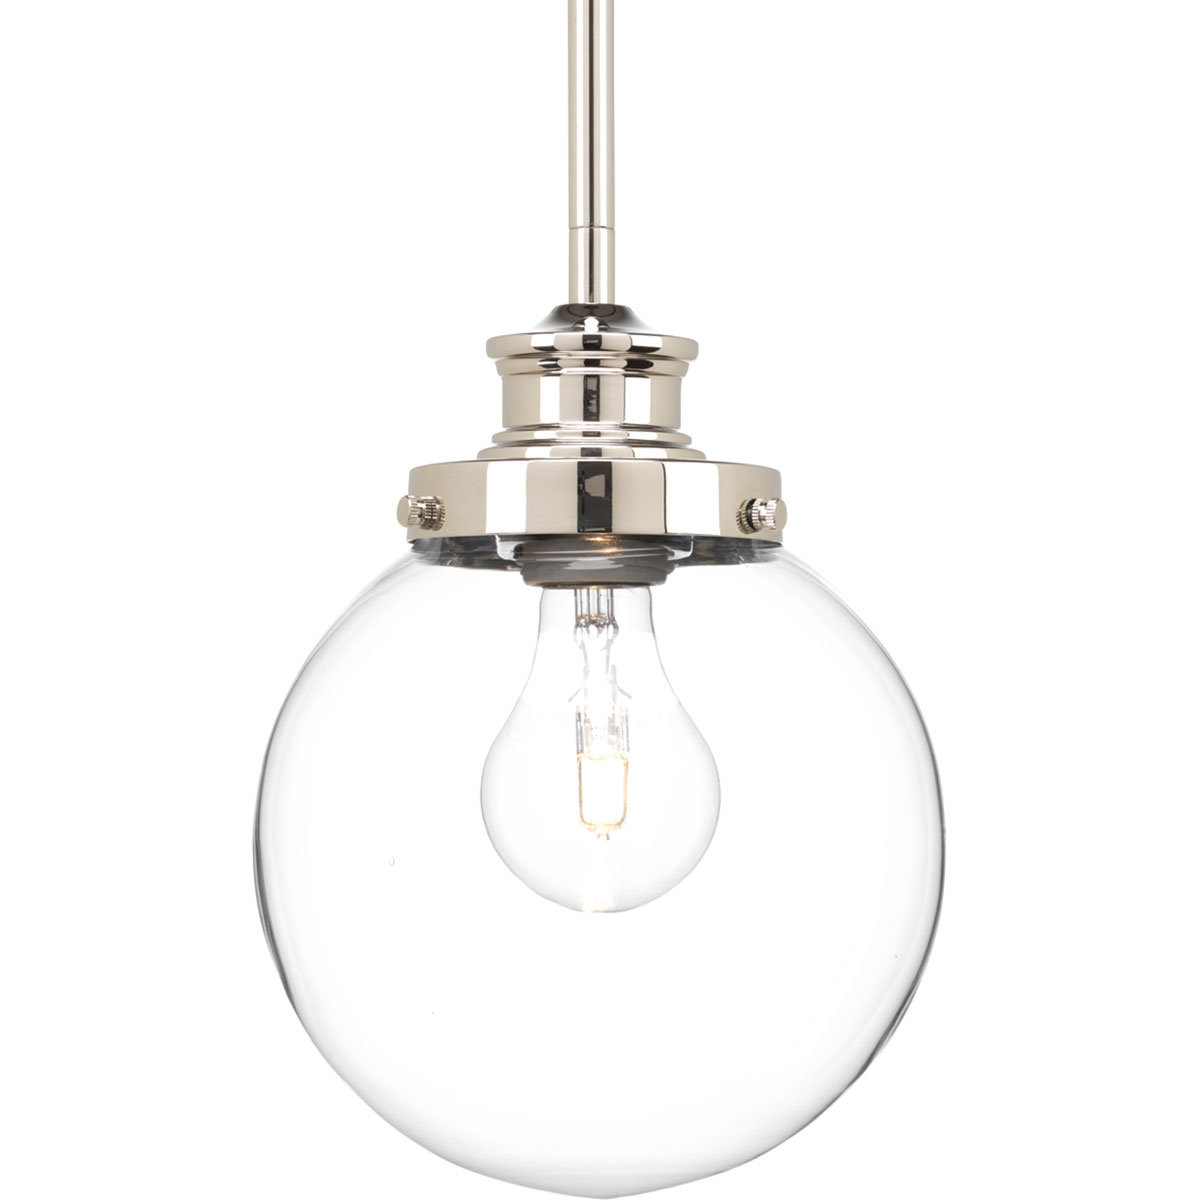 Best And Newest Cayden 1 Light Single Globe Pendant Within Cayden 1 Light Single Globe Pendants (View 1 of 20)